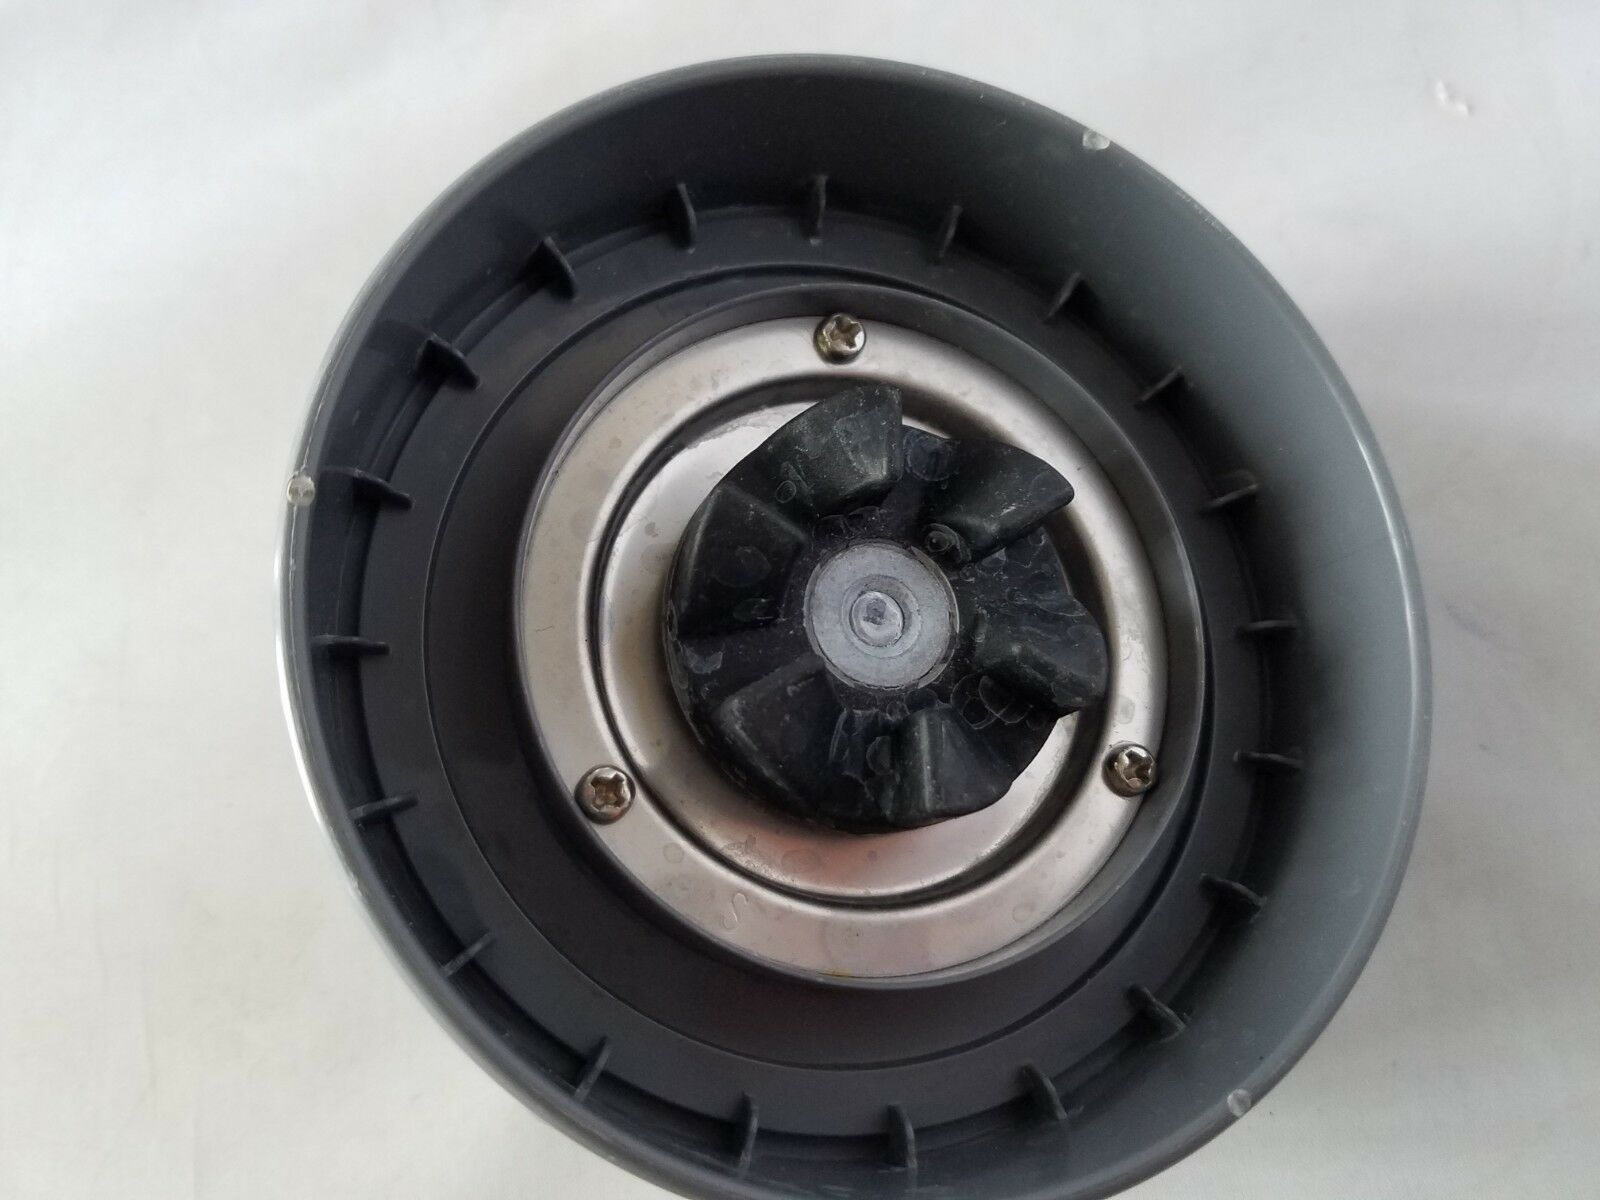 Nutri Bullet 900 Series Blender Cup & Blade Replacement Part Only Pieces Shown